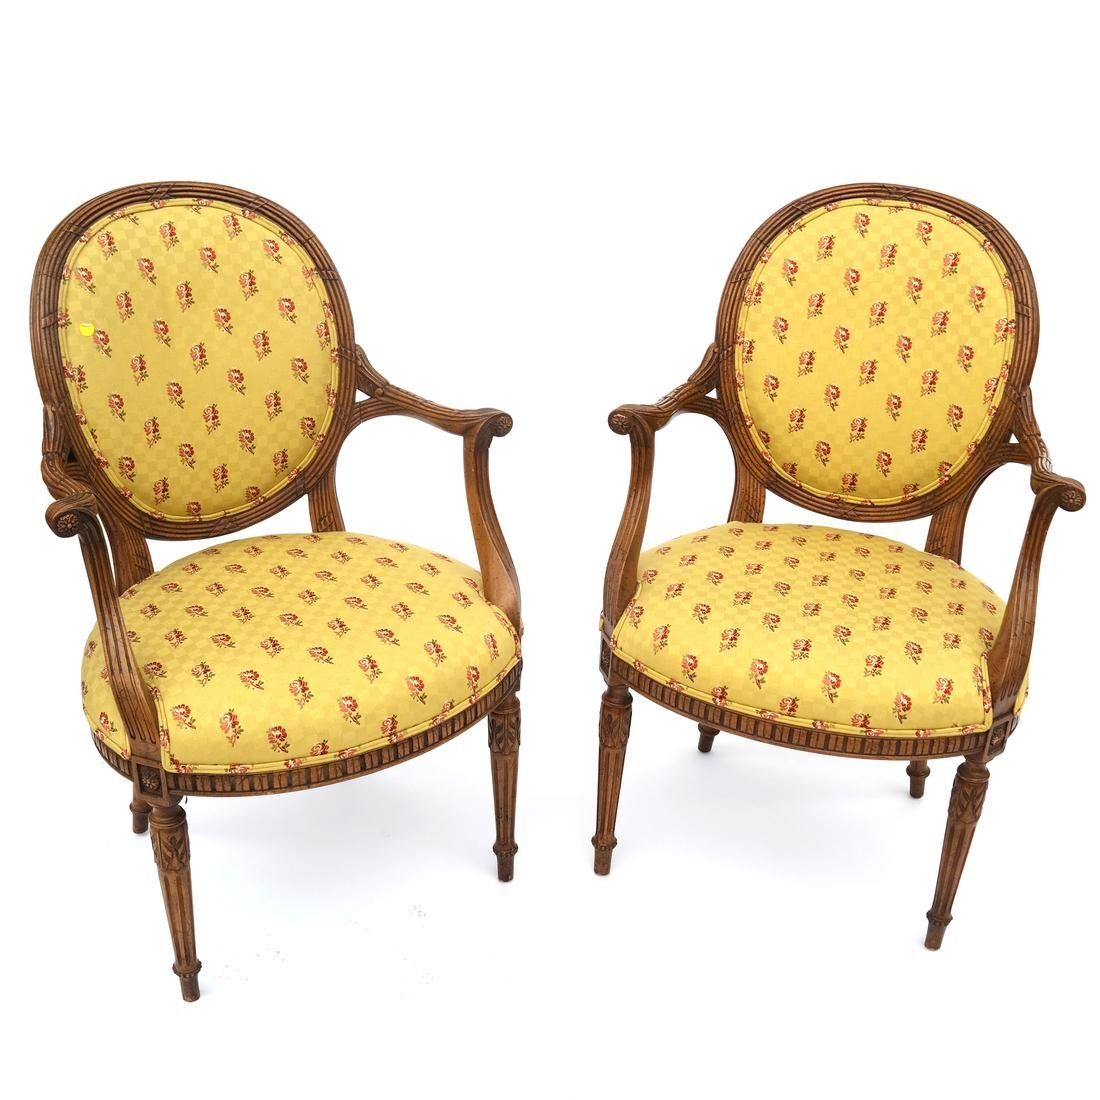 Pair of Fruitwood Floral Upholstered Armchairs